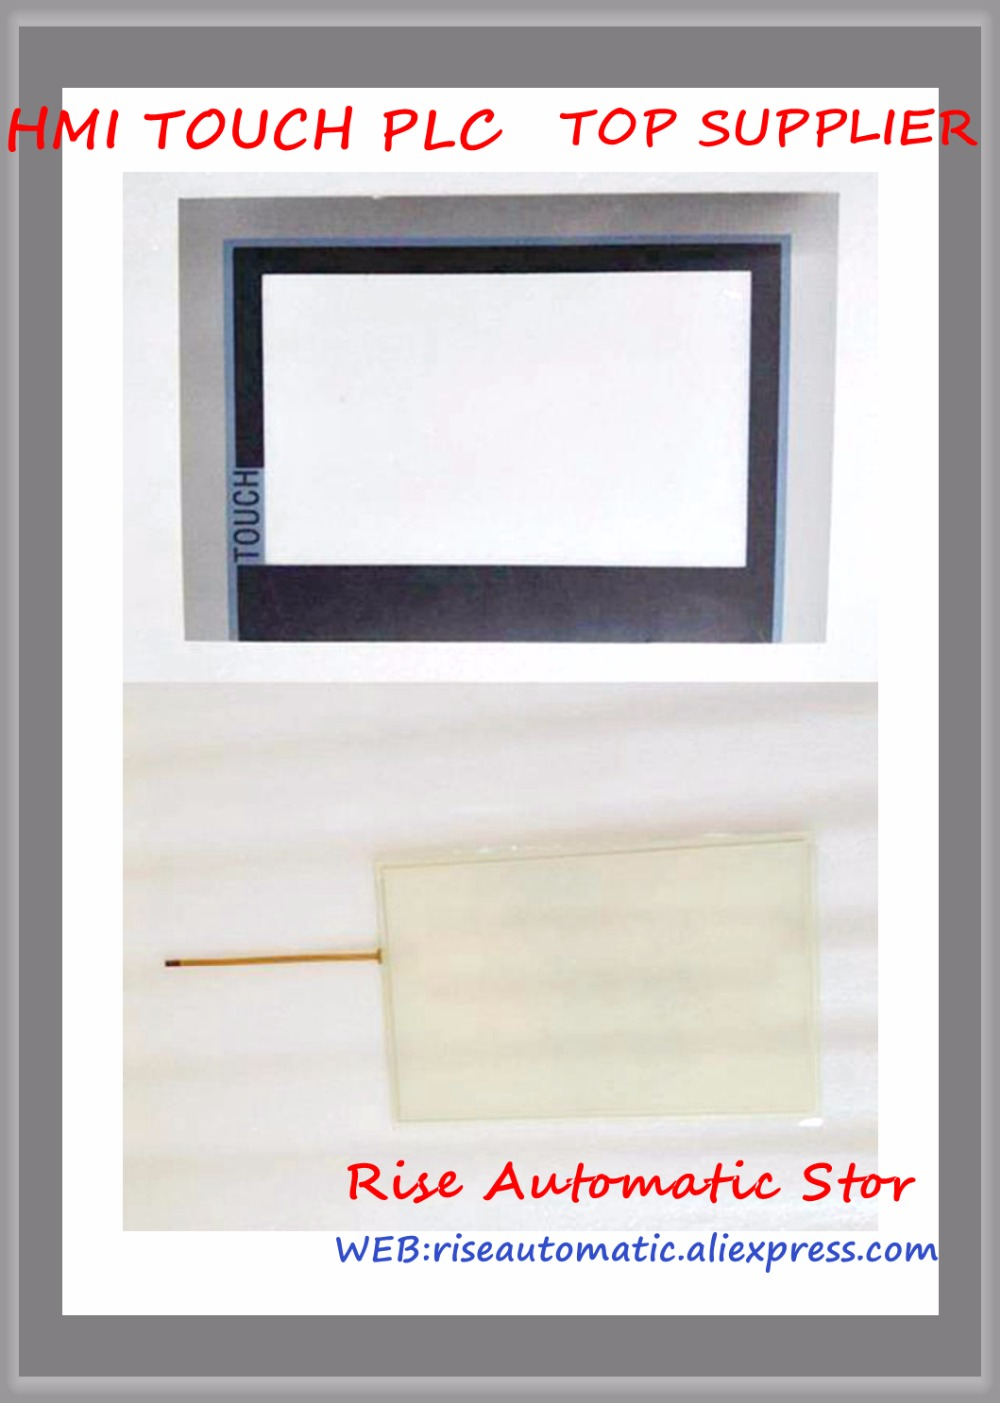 New Touch Glass+ Protective film 6AV2124-0MC01-0AX0 for HMI TP1200 12 touch panel 6AV2 124-0MC01-0AX0 6AV21240MC010AX0 navigator самокат трехколесный цвет голубой черный